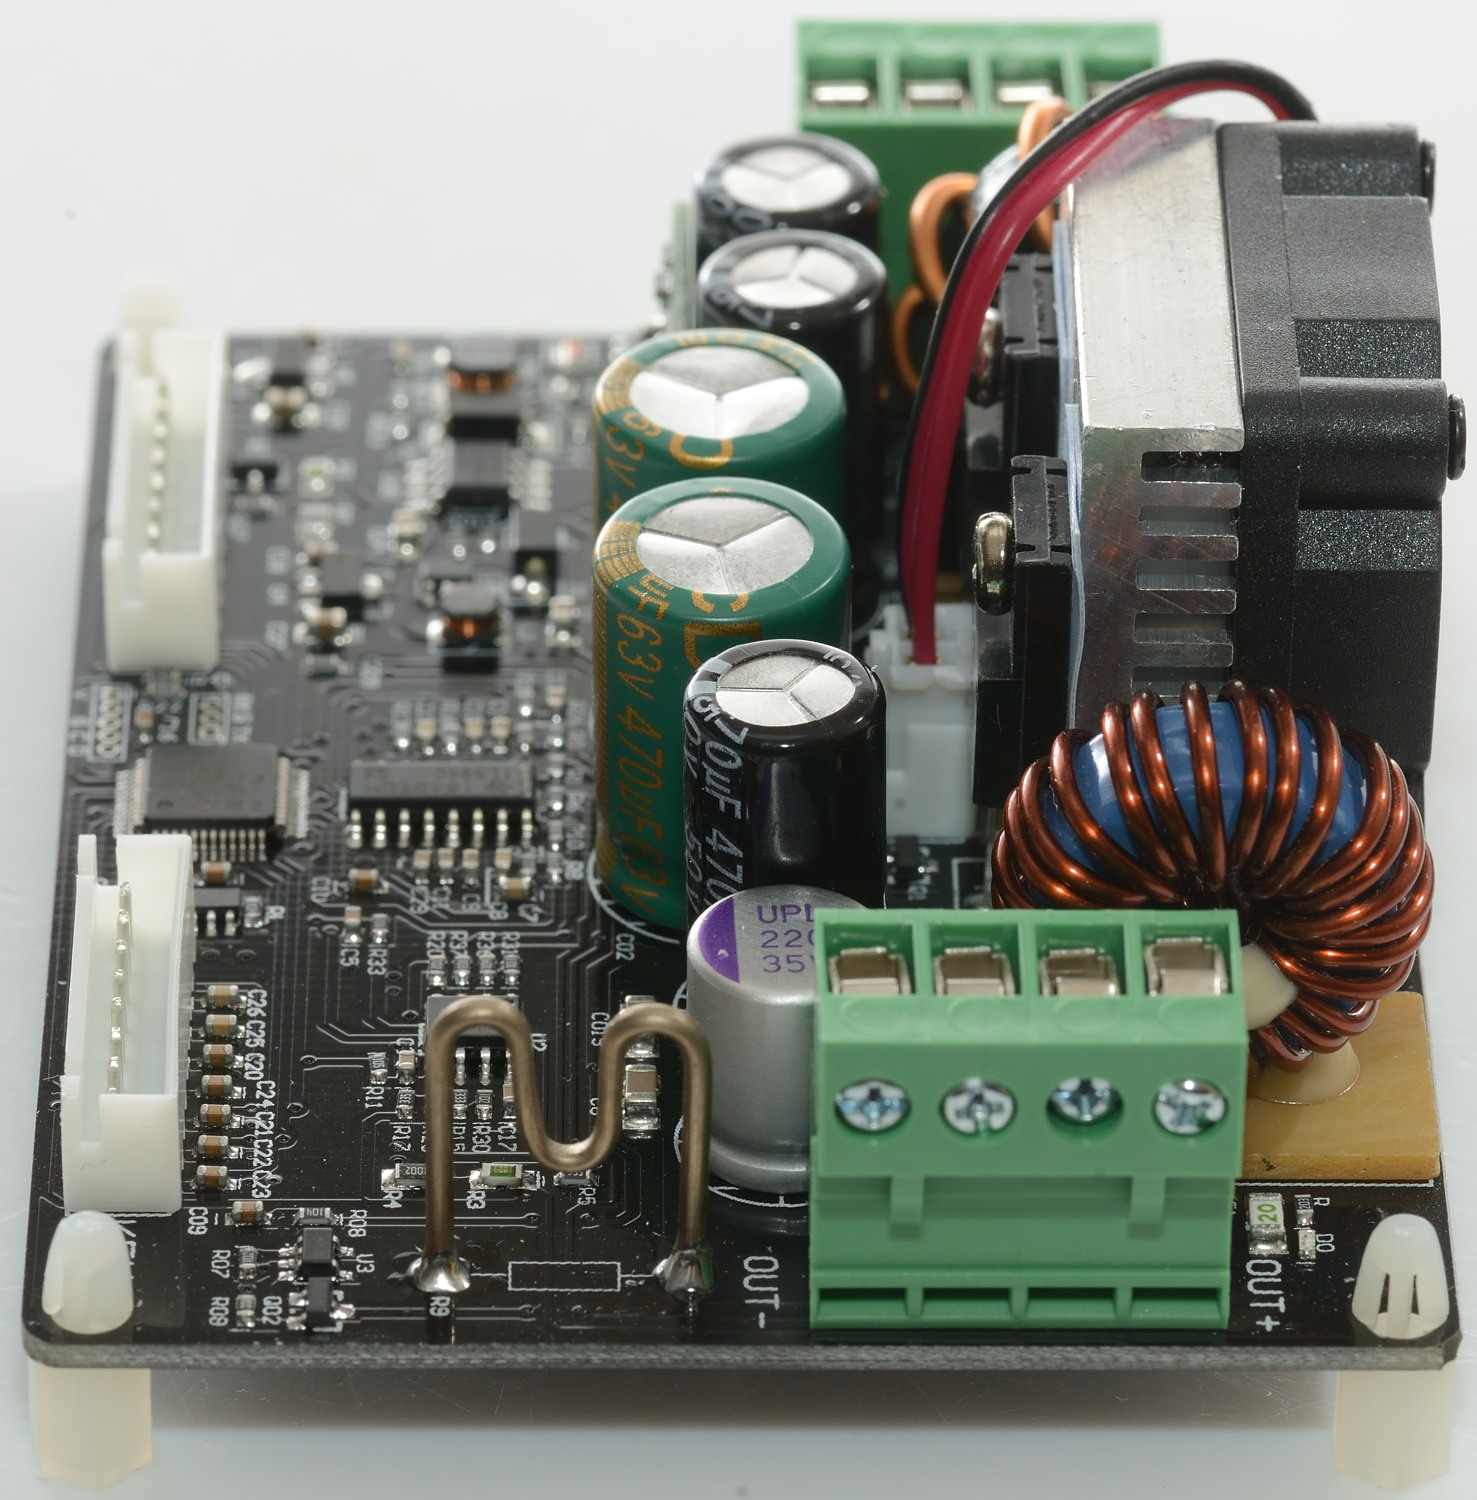 Boost 35v Regulator Circuit With This Chip Can Boost Or Build Stable